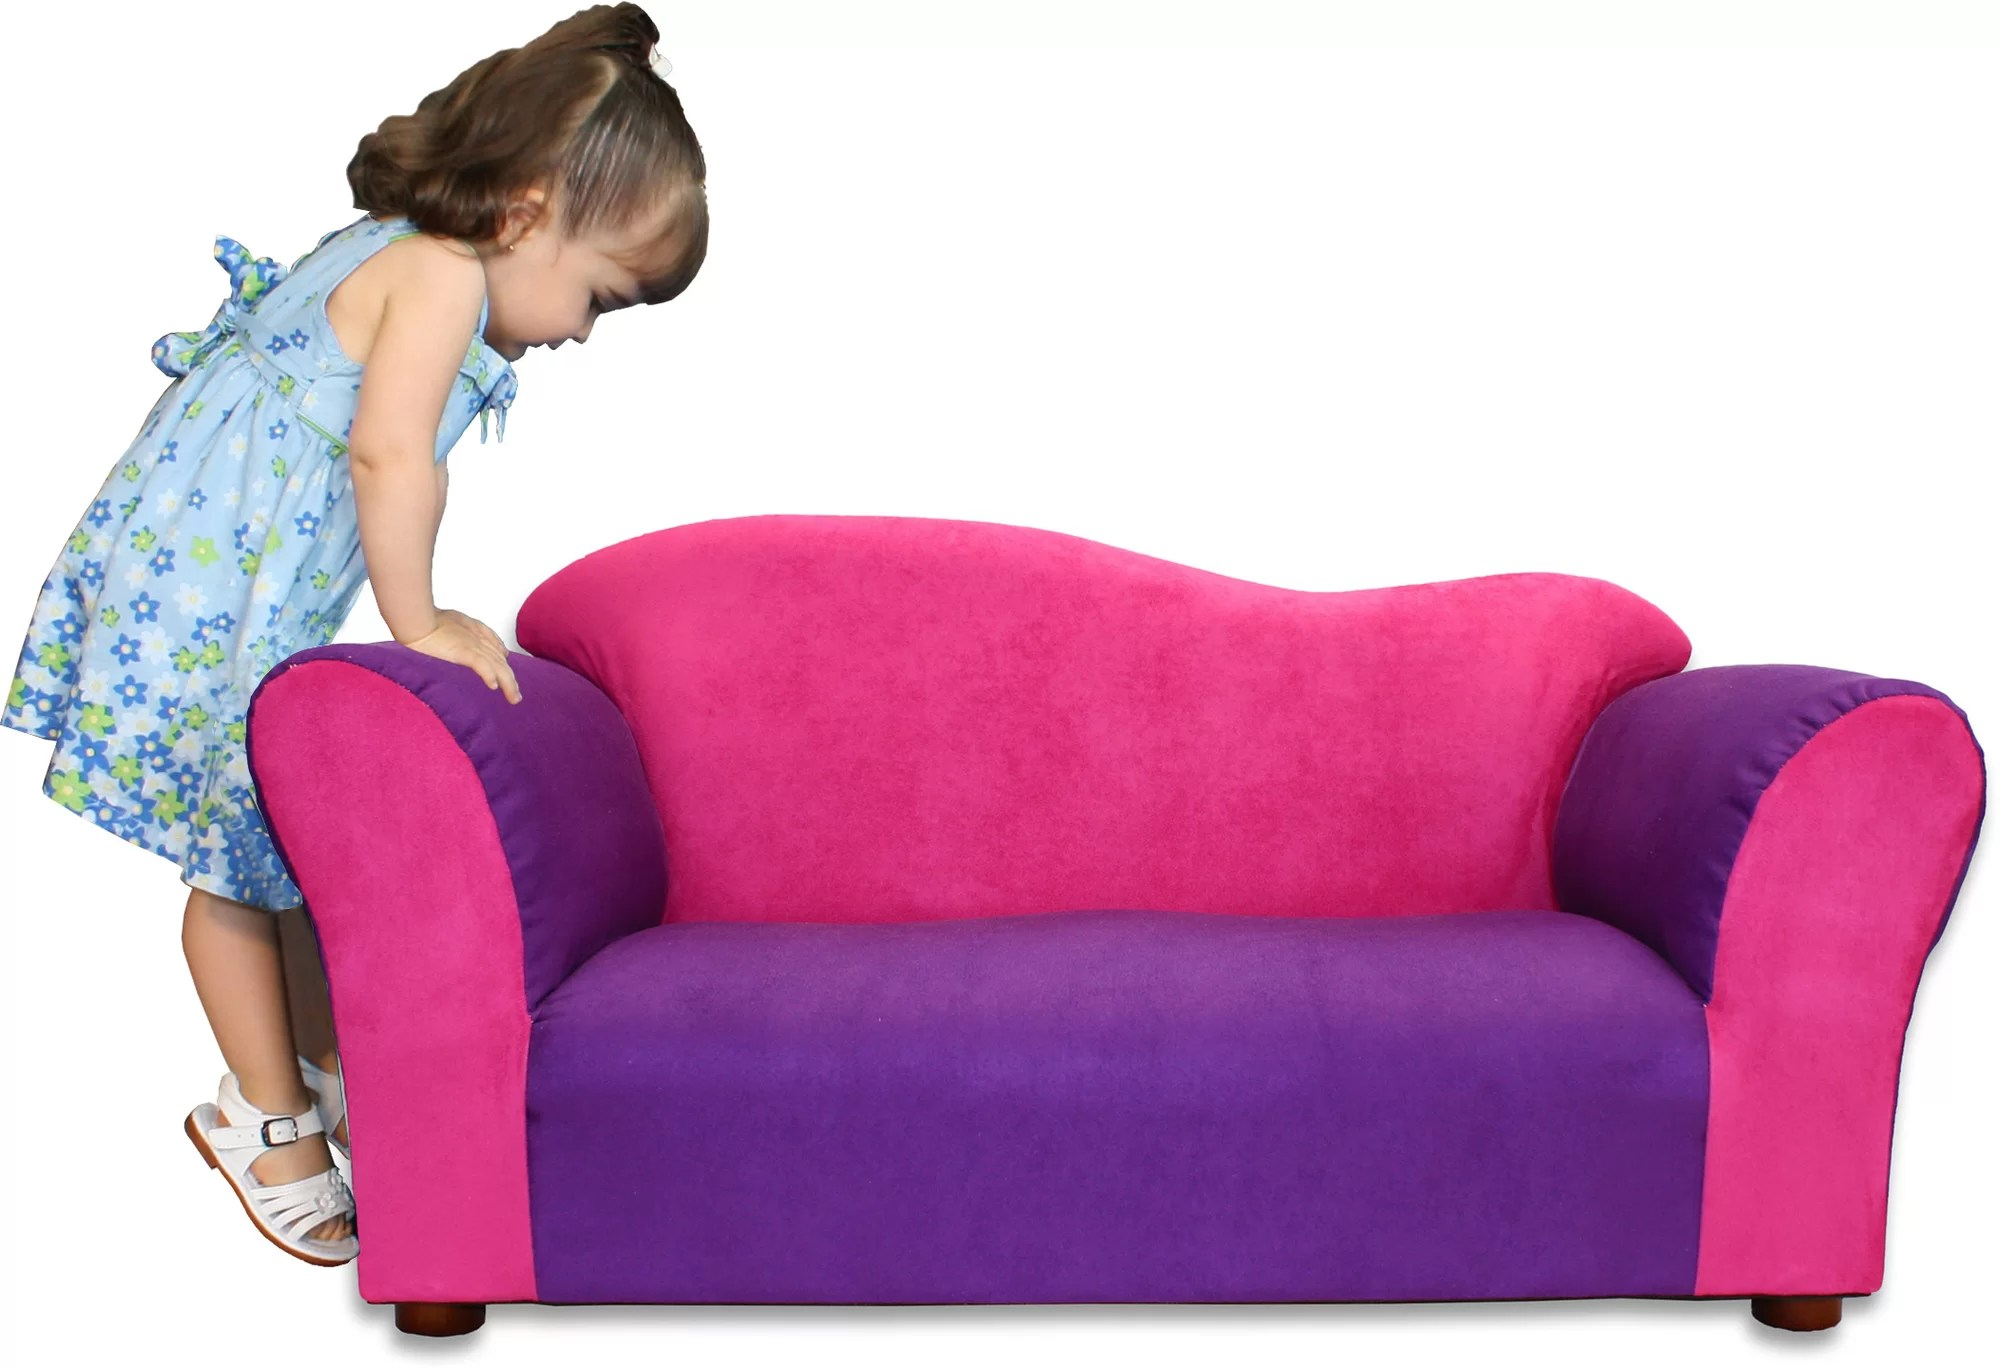 Toddler Sofa Chair Purple Bedroom Ideas Purple Furniture